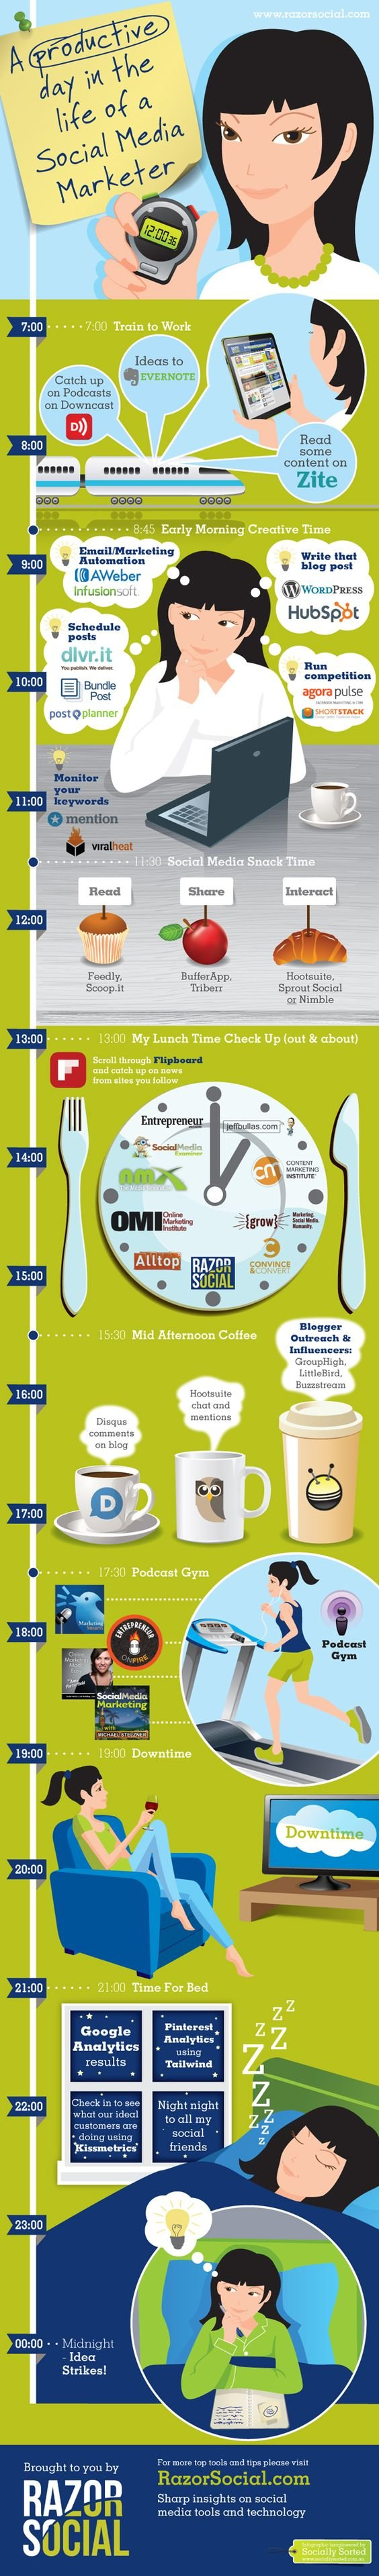 Productive day in a life of #Social_Media marketer #SMM #Infographic